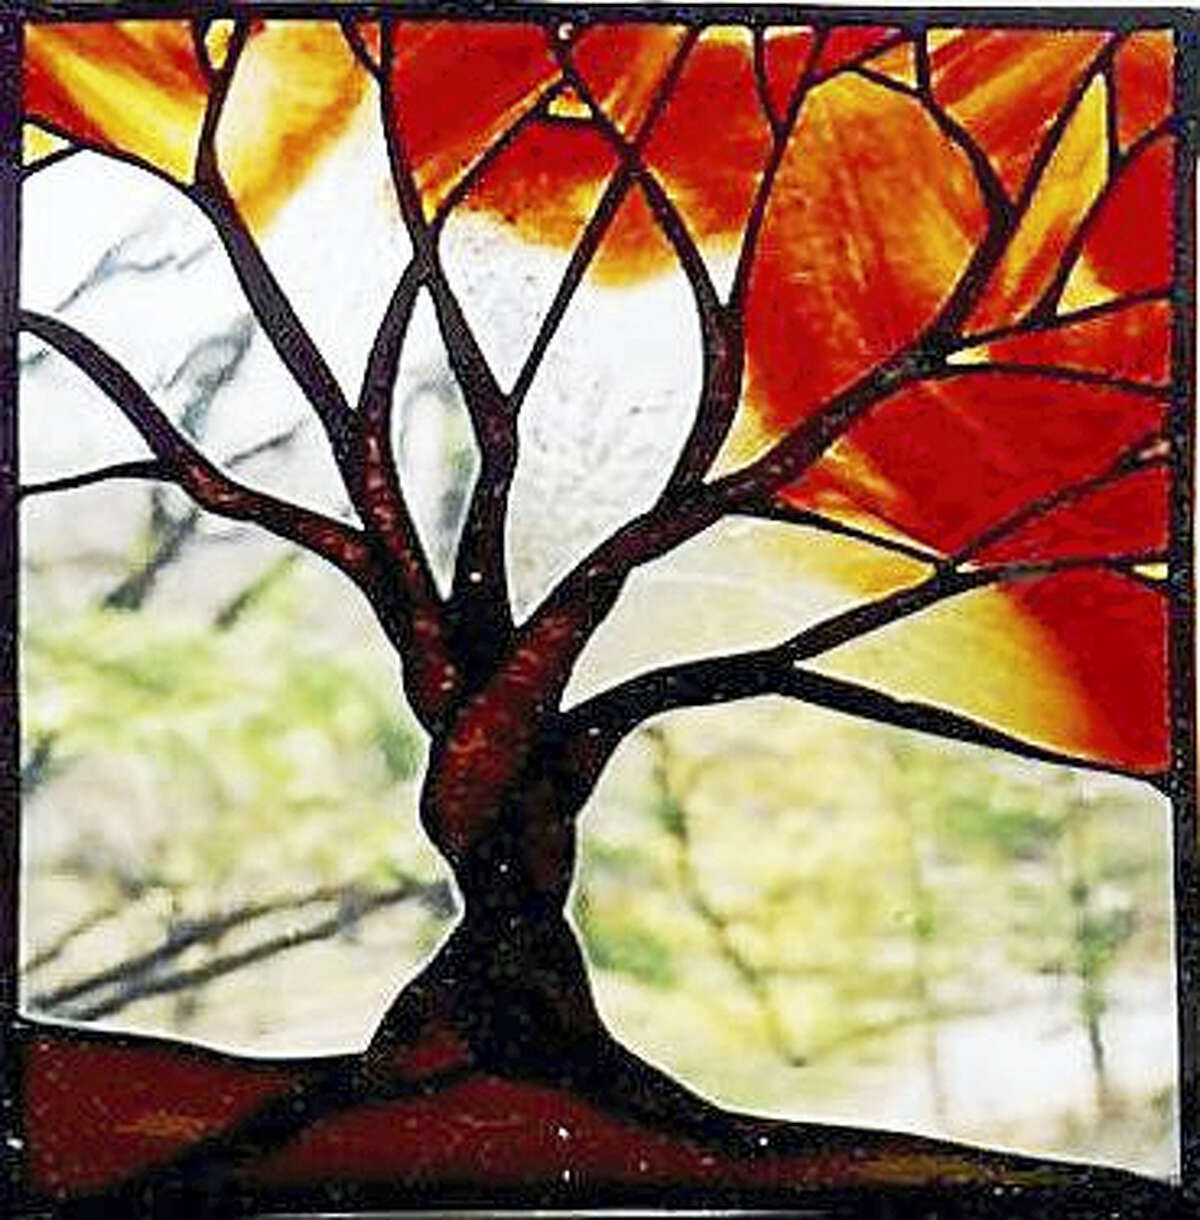 Image courtesy of http://www.autumnlightstudio.com/Home.htmlA juried stained glass art show at Autumn Light Studio and Gallery in New Hartford opens Sept. 17 in New Hartford.